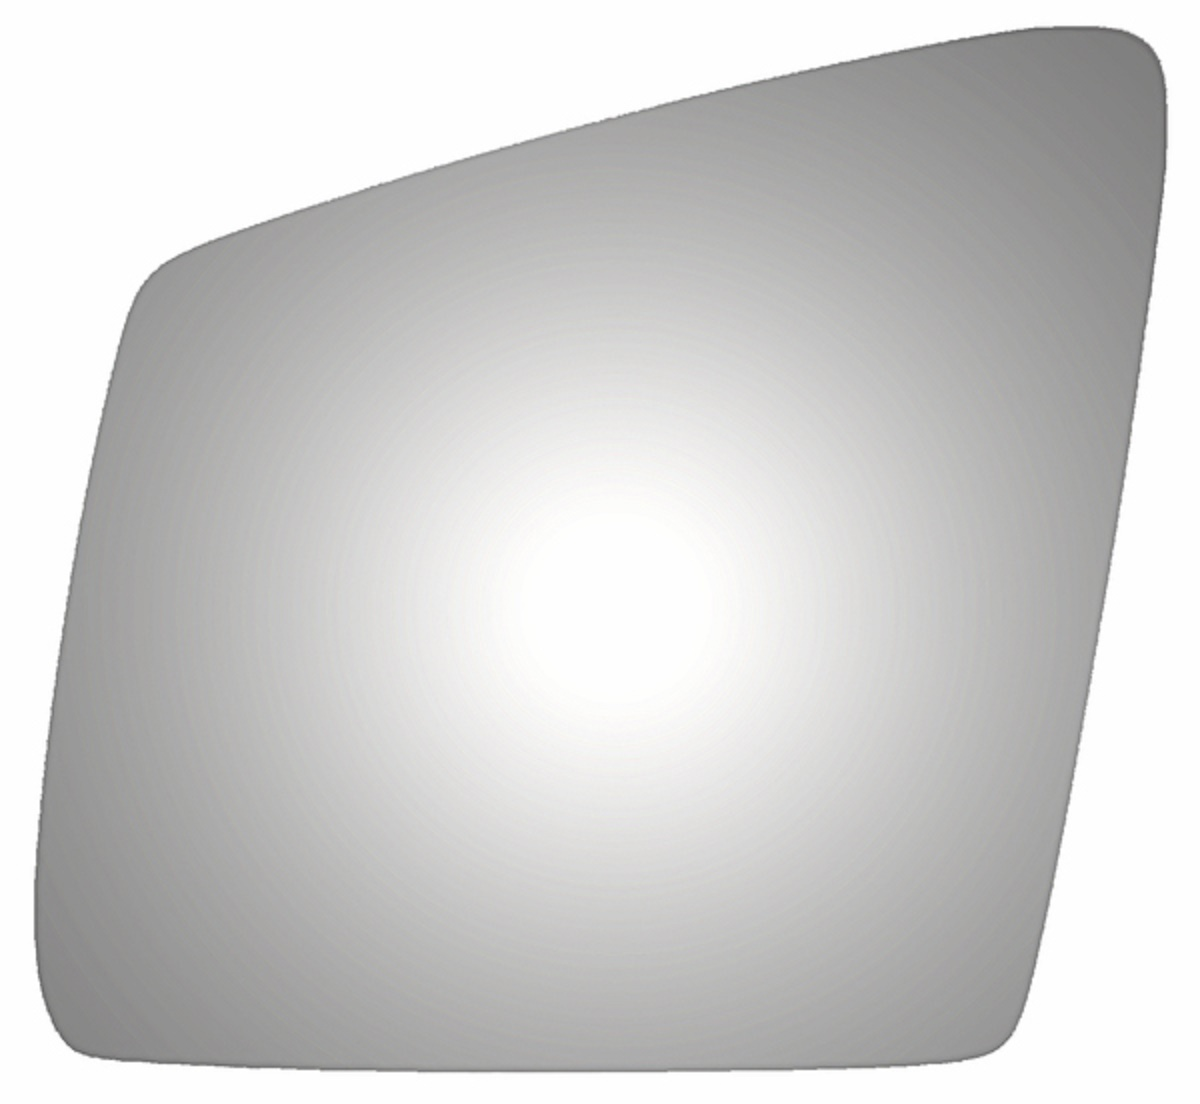 Mercedes benz gl350 2015 driver side mirror glass for Driver side mirror replacement mercedes benz